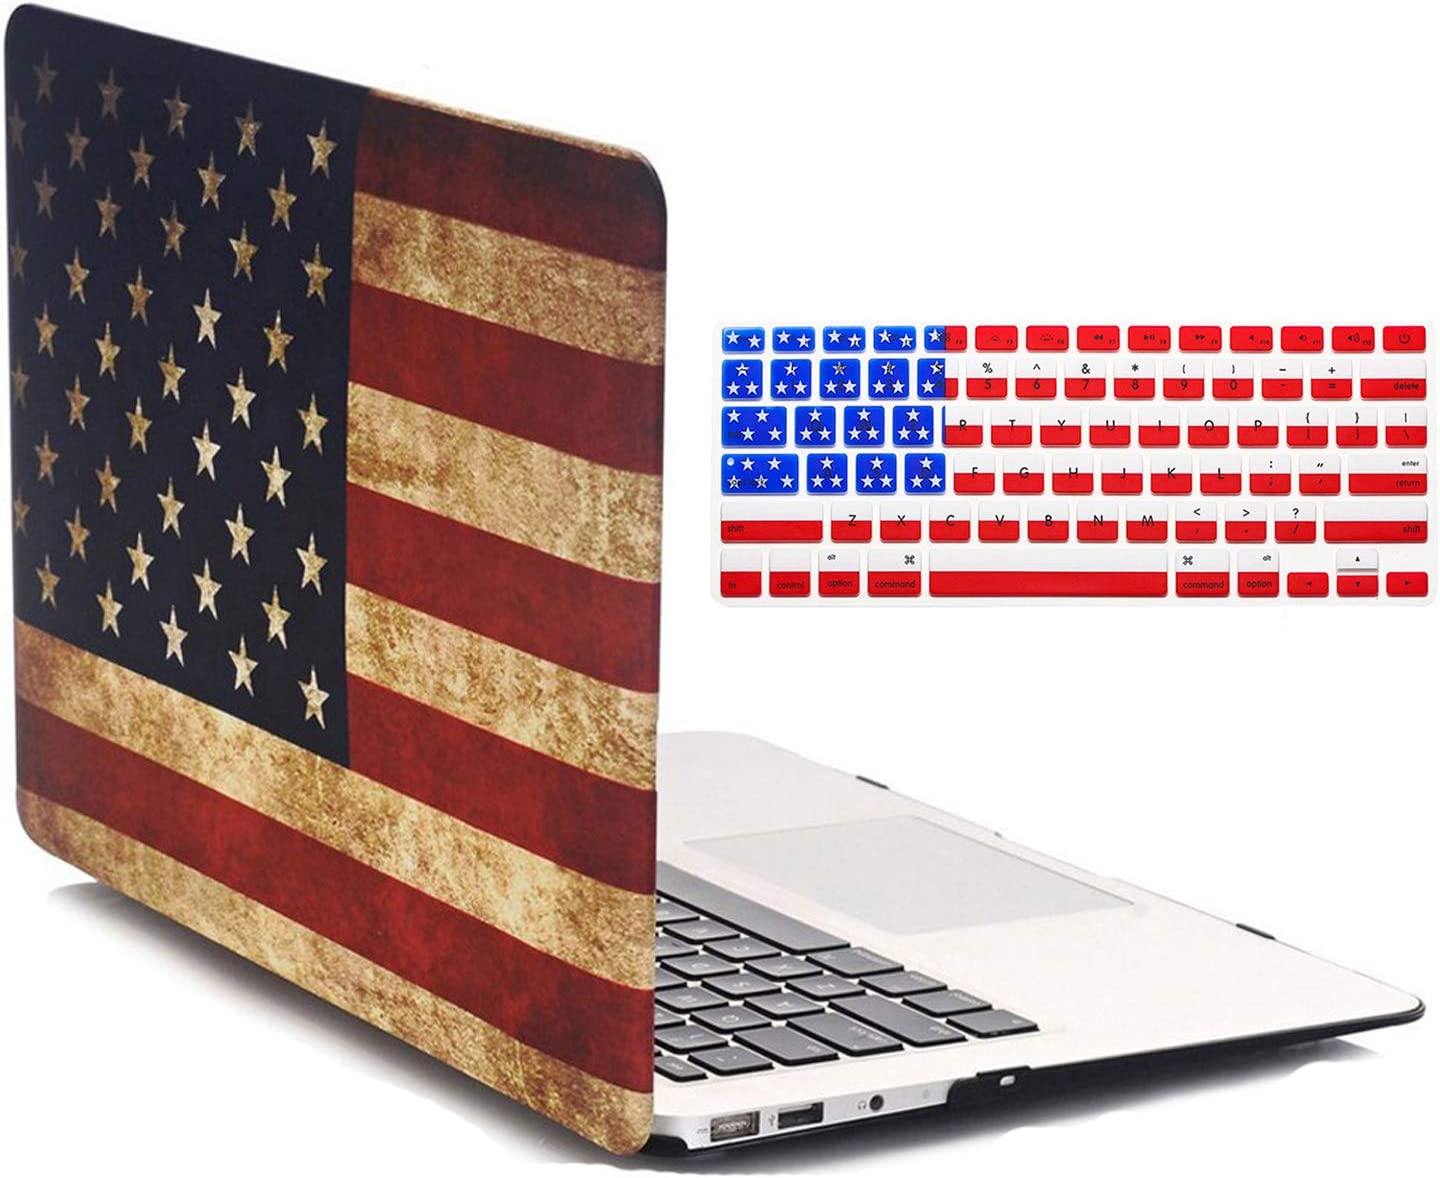 Old MacBook Air 13 Inch Case A1466/A1369 Release 2017/2015/2014/2013/2012/2011/2010, iZi Way National Flag Hard Shell Folio Case Cover for Mac Air 13 with American Flag Keyboard Cover - US Flag